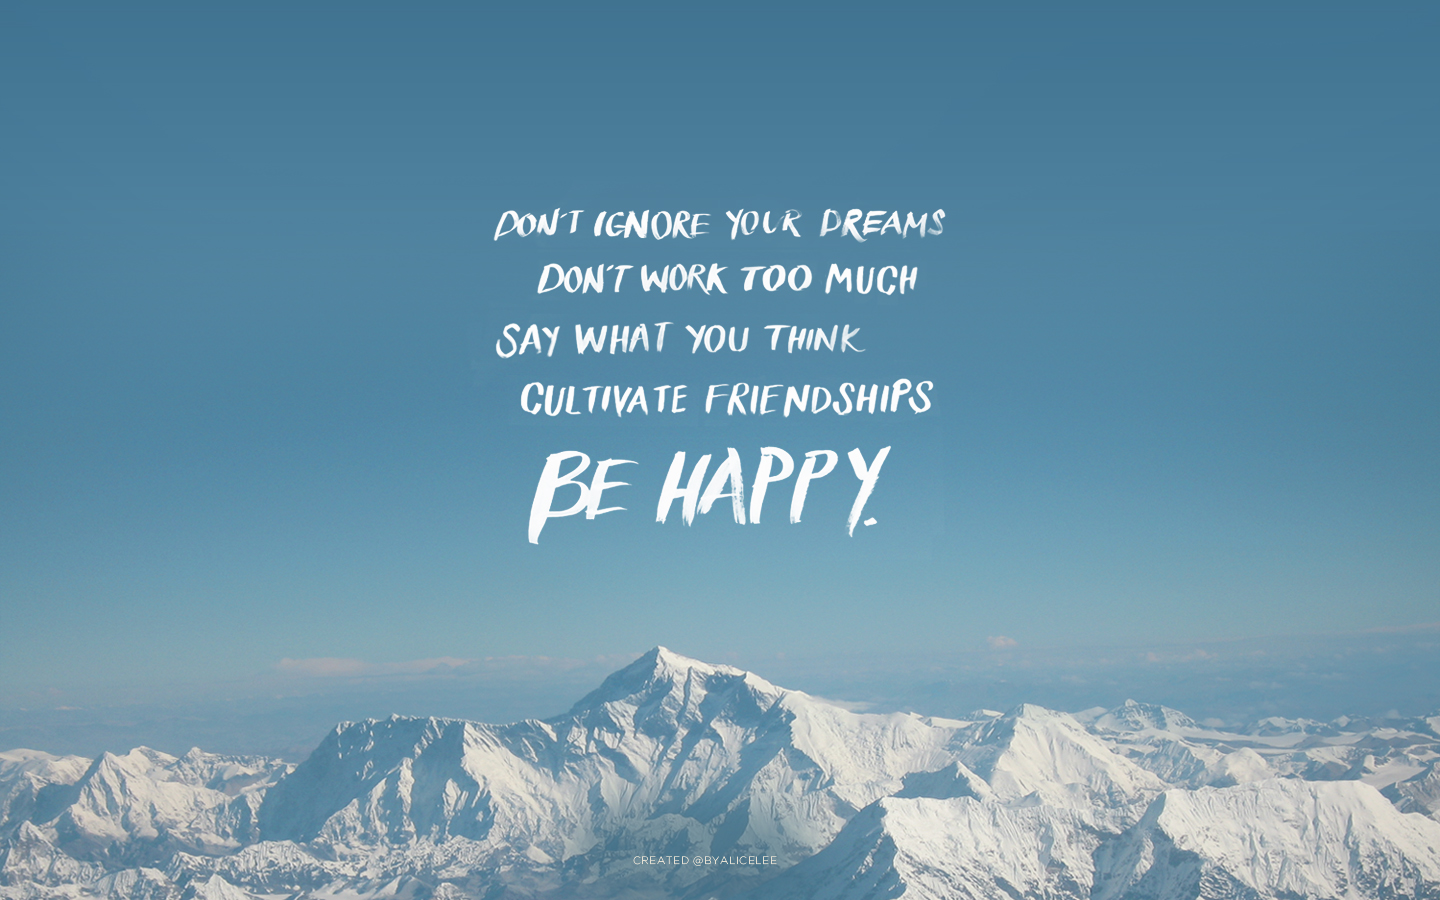 Dream Quote Wallpaper High Quality The Word - Mt Everest 2017 - HD Wallpaper